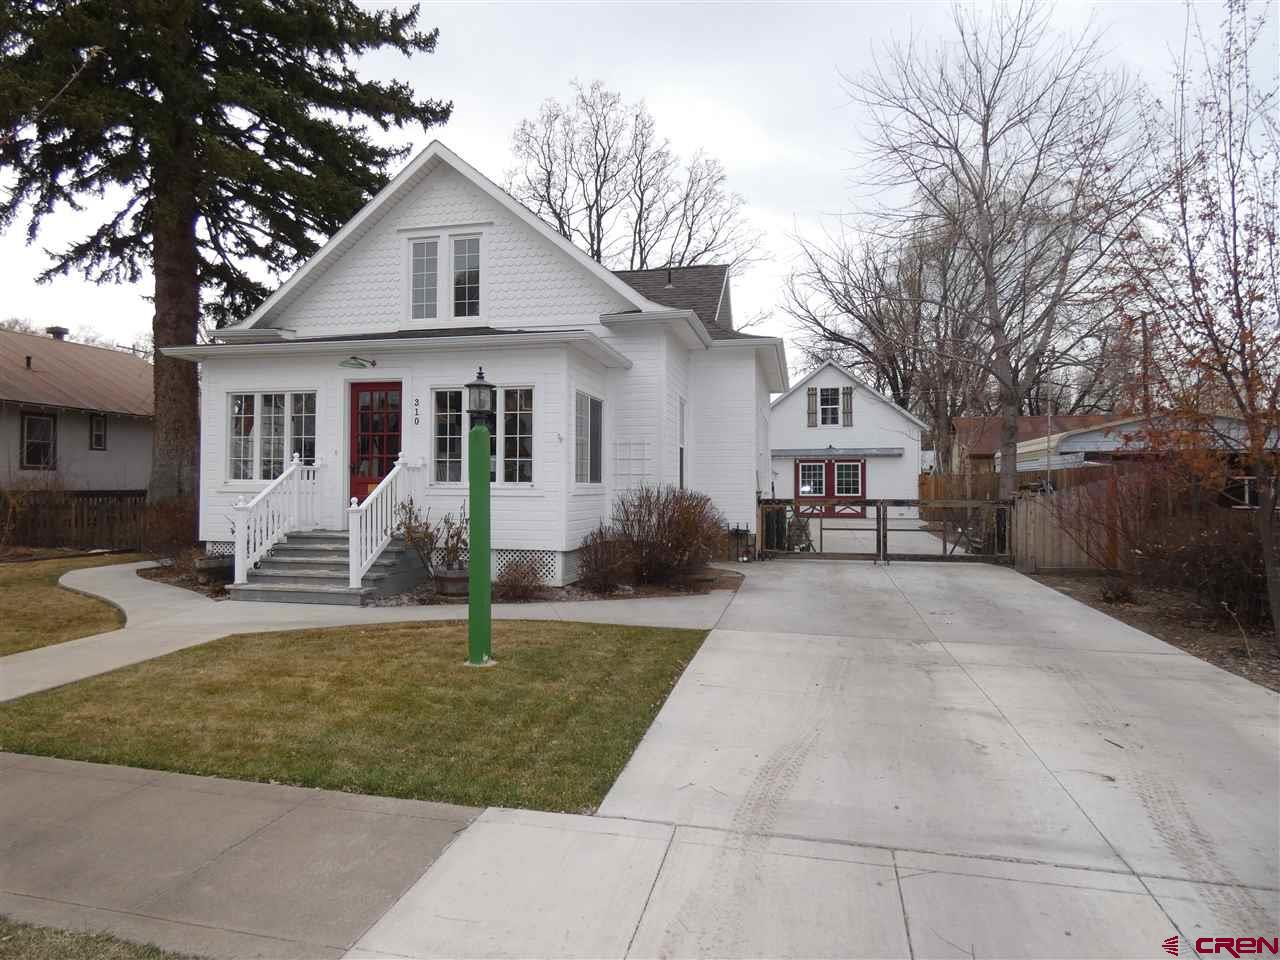 MLS# 767692 - 4 - 310 S 6th Street, Olathe, CO 81425